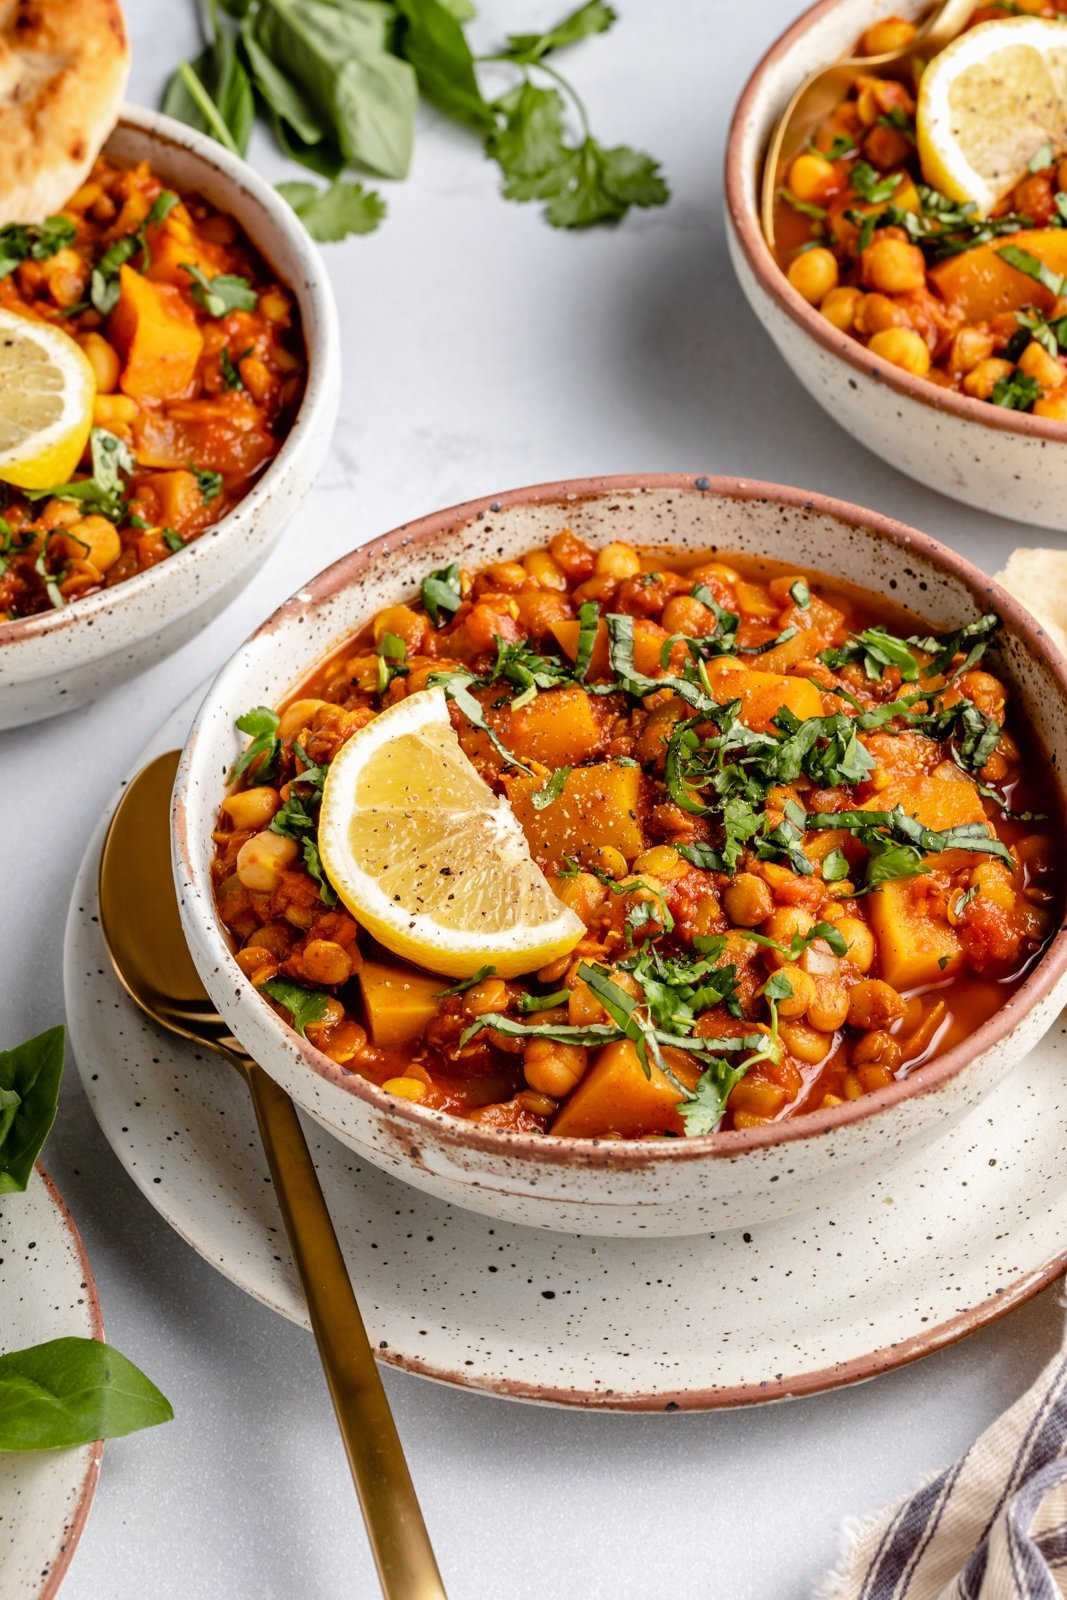 Moroccan stew in a bowl with a lemon wedge